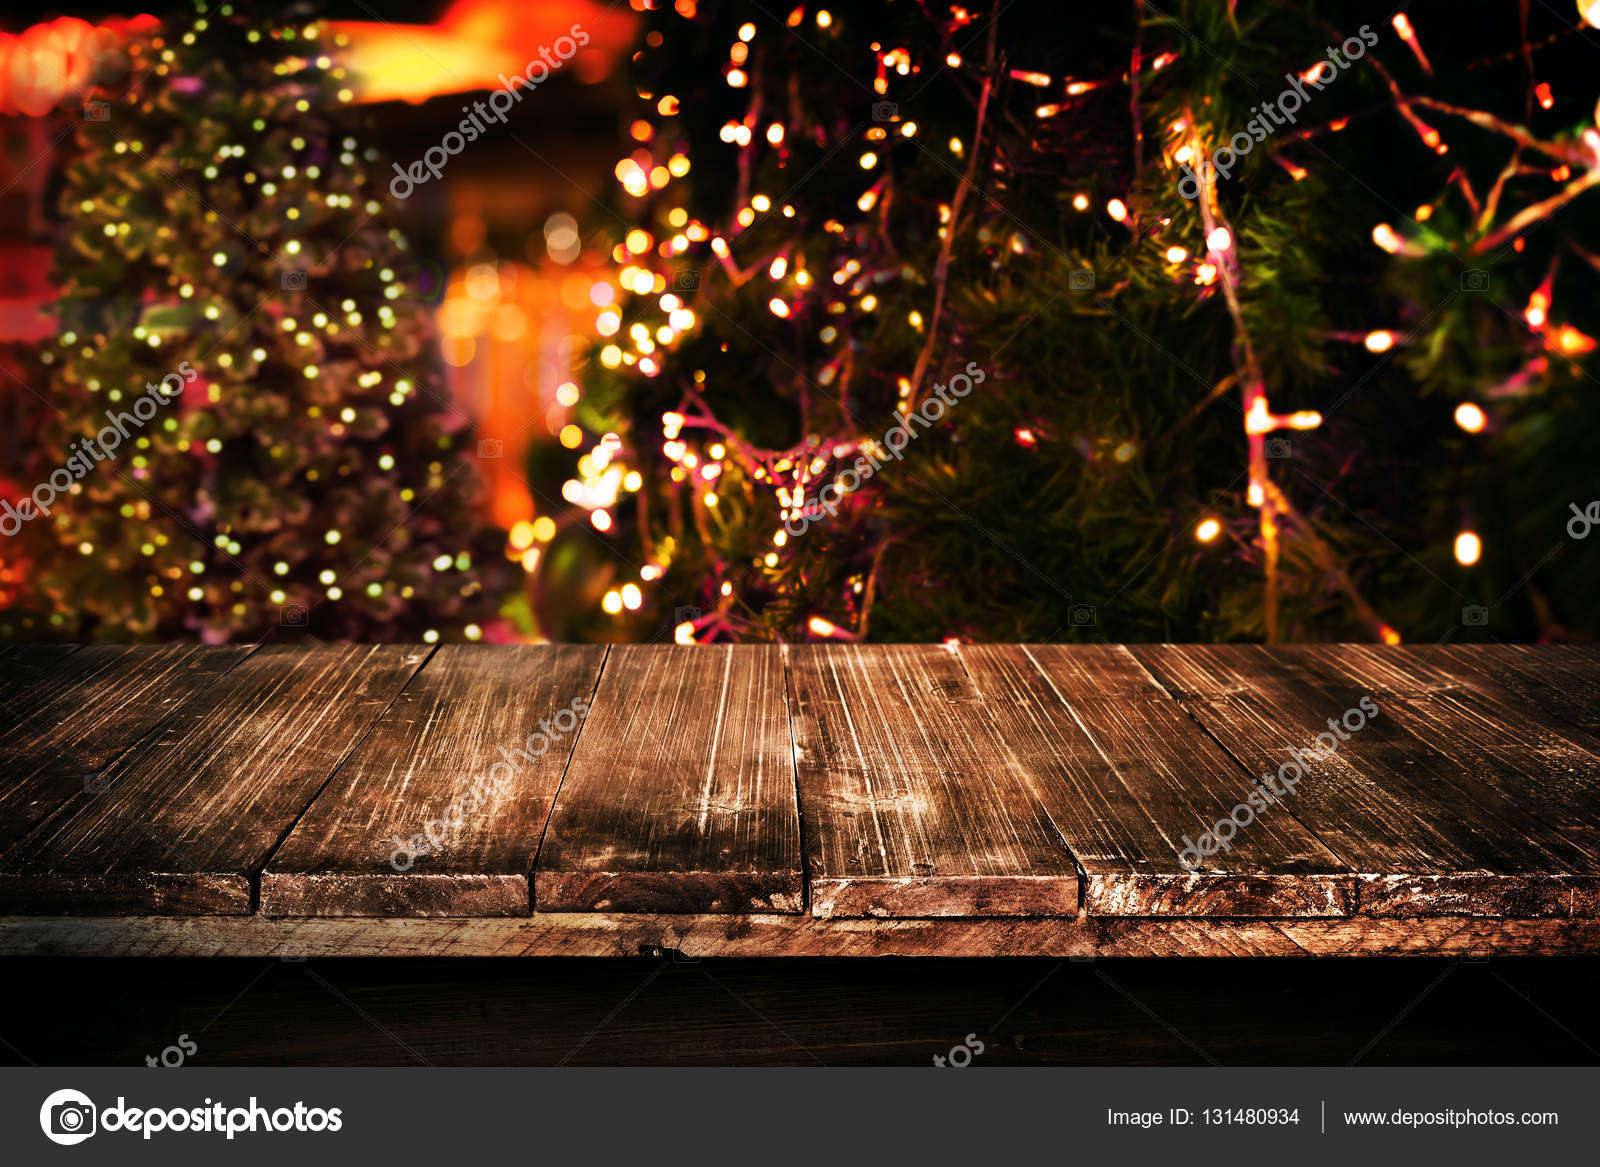 Christmas And New Year Background With Empty Dark Wooden Deck Table Over Tree Blurred Light Bokeh Display For Product Montage